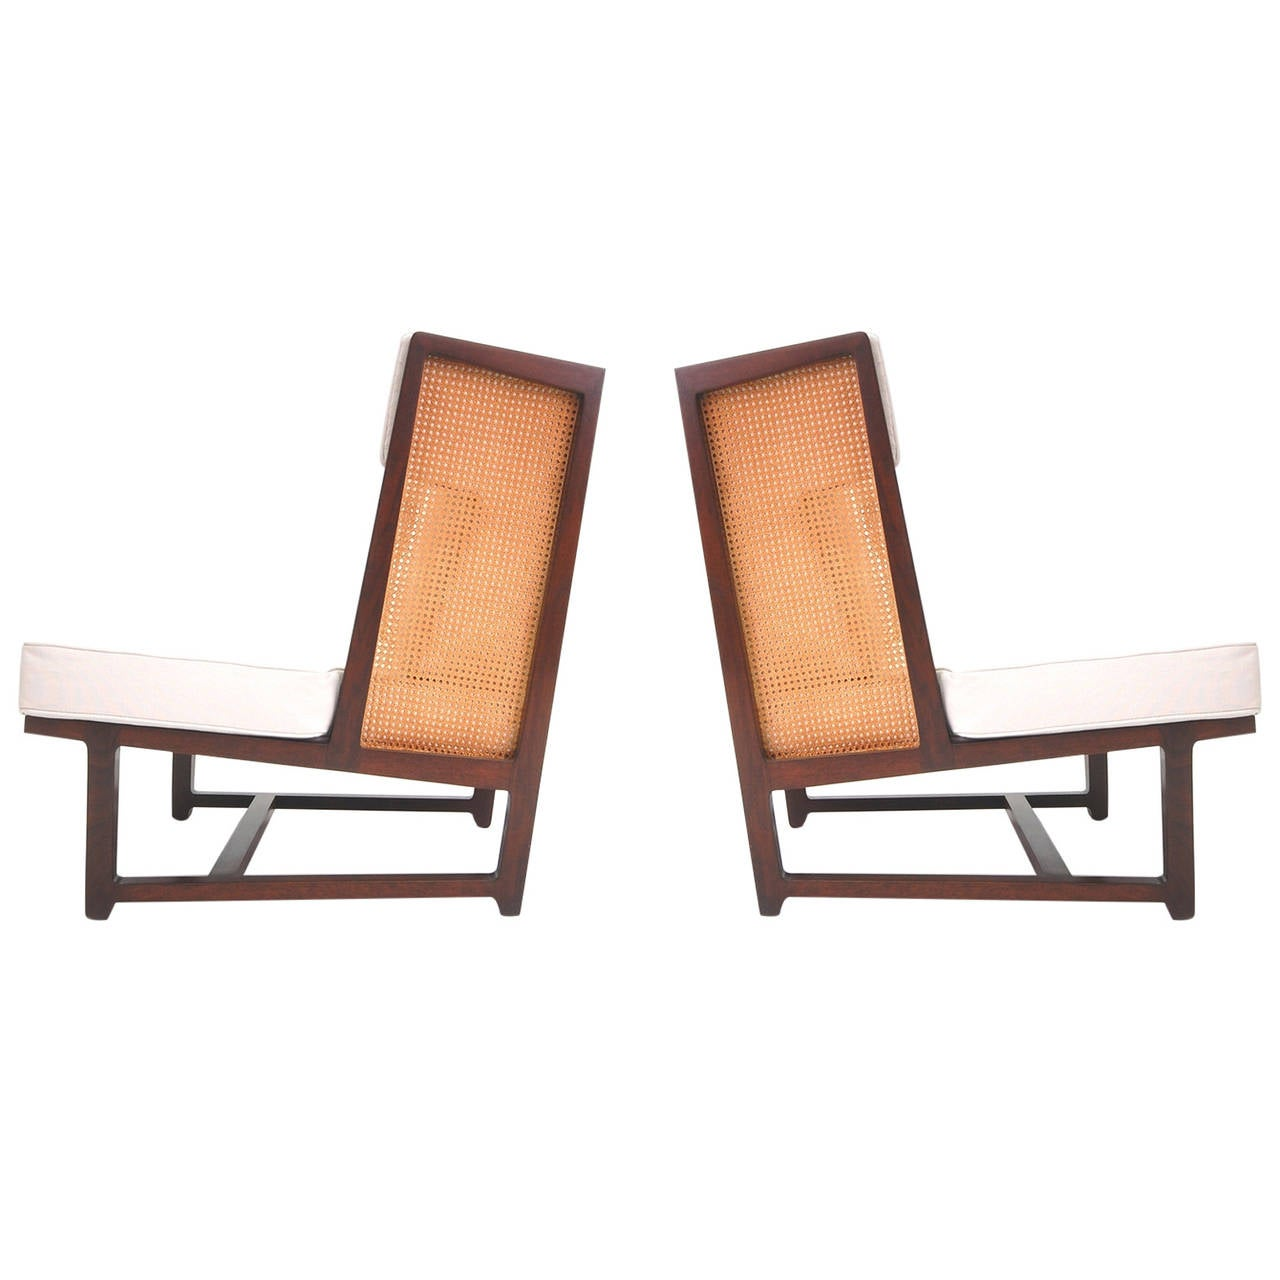 Pair of High Back Lounge Chairs by Dunbar at 1stdibs